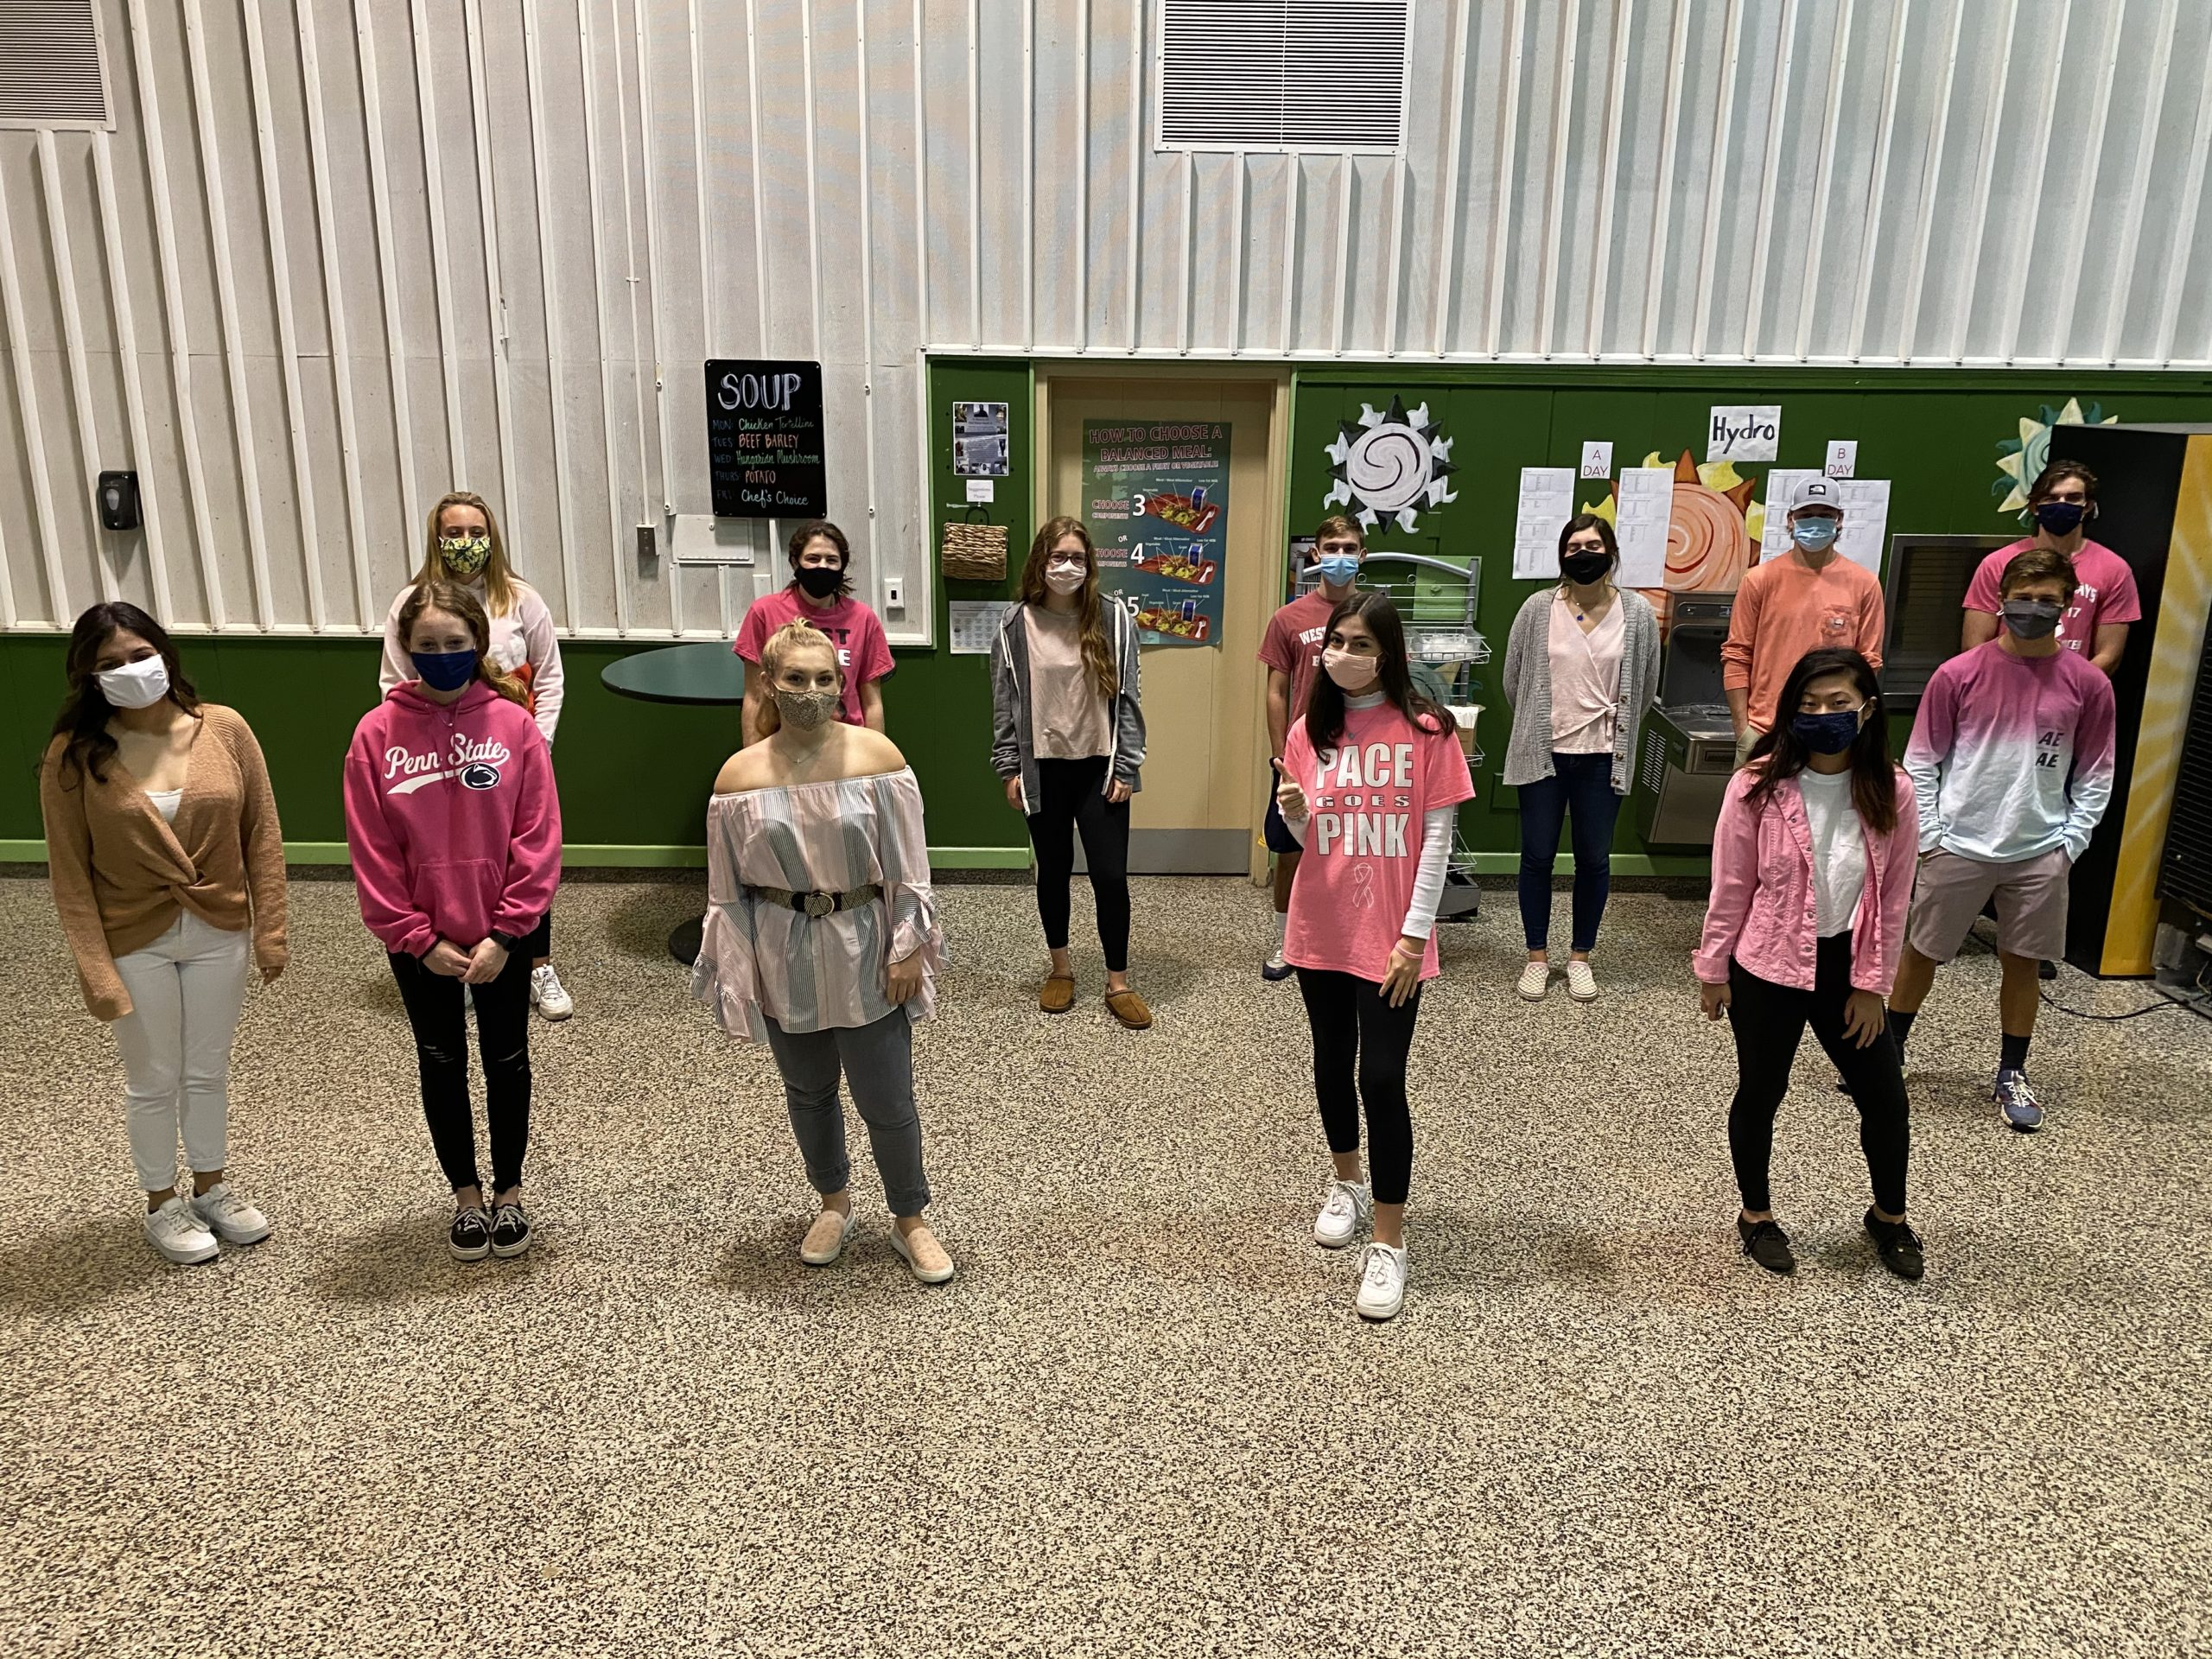 To raise awareness about breast cancer, members of the Westhampton Beach High School National Honor Society sponsored a Wear Pink to School campaign. On October 22 and 23, all students were encouraged to wear pink in acknowledgment of Breast Cancer Awareness Month.